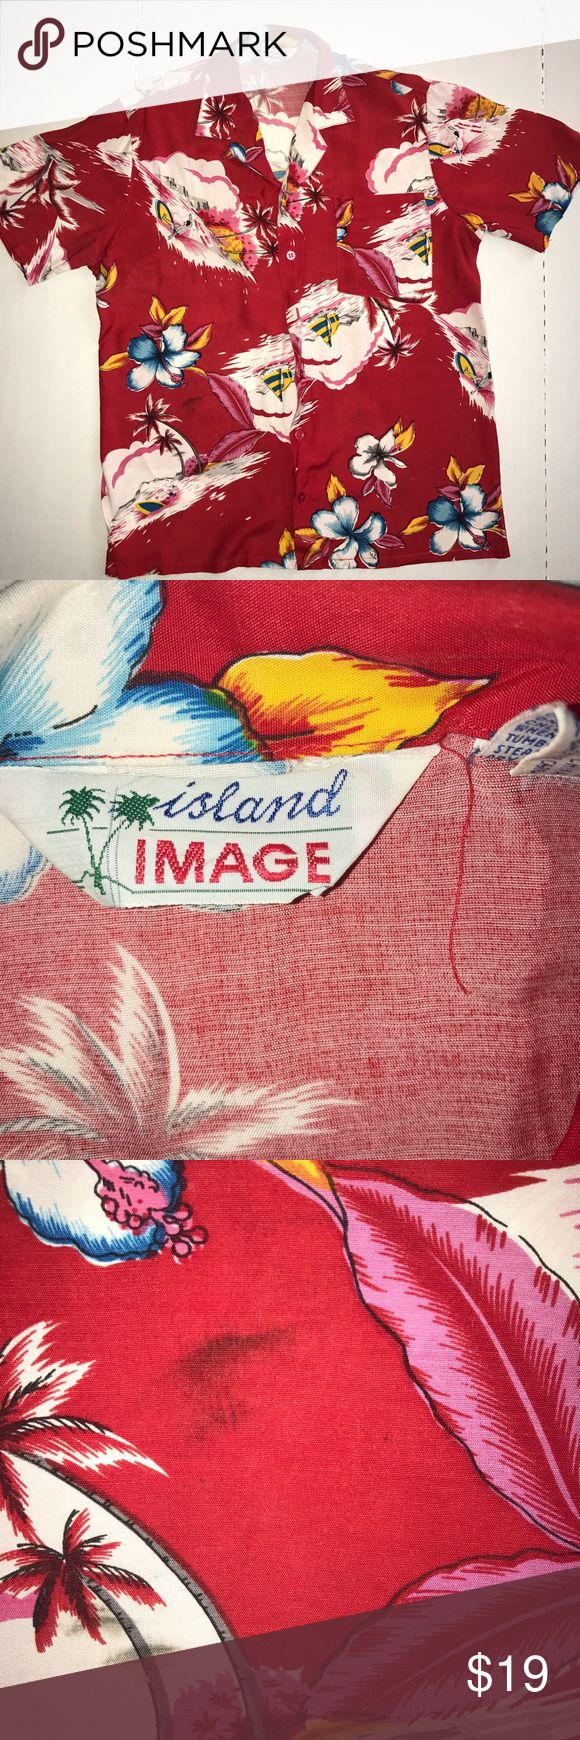 VINTAGE 1940s Island Image Vintage Hawaiian shirt Great shirt for parties and casual endeavors! Slight flaws as depicted in images, but they're not noticeable until you actively seek them. island image Shirts Polos